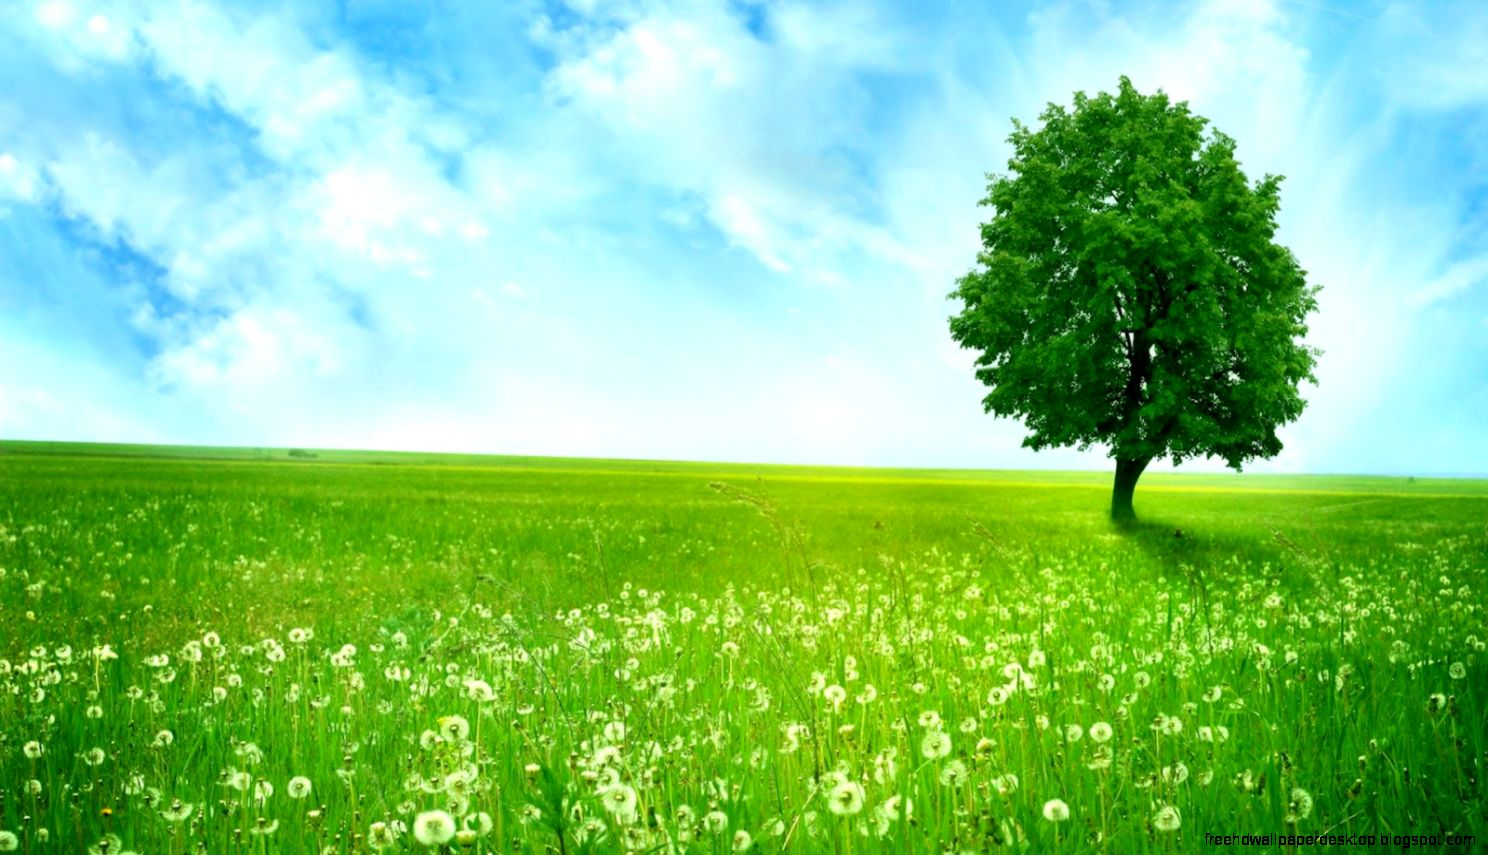 Windows Green Grass Wallpaper Hd Free High Definition Wallpapers